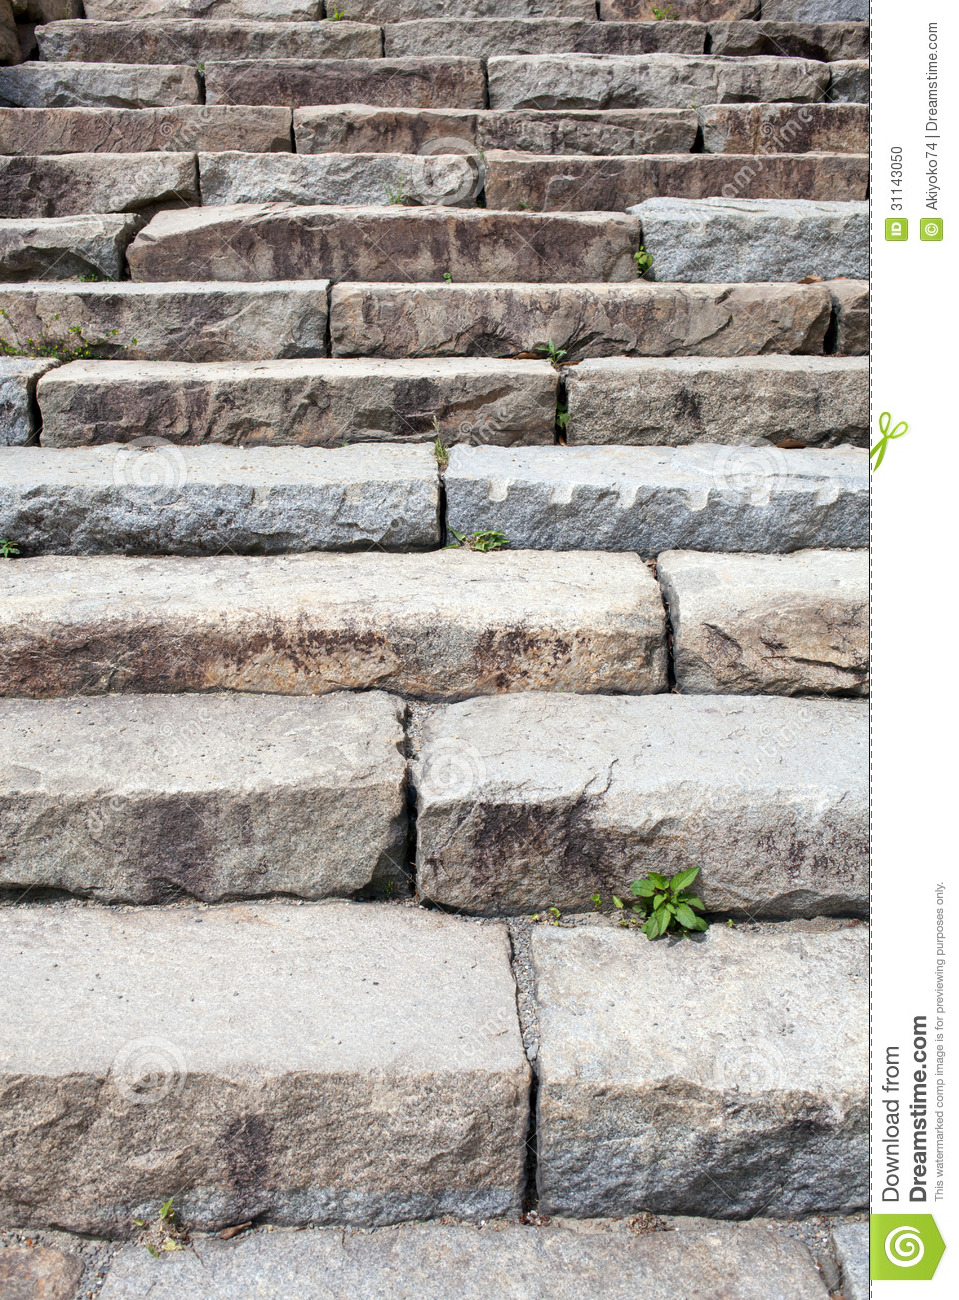 Stock Photo Old Stone Stairs Texture Baxkground Image31143050 on ruins texture